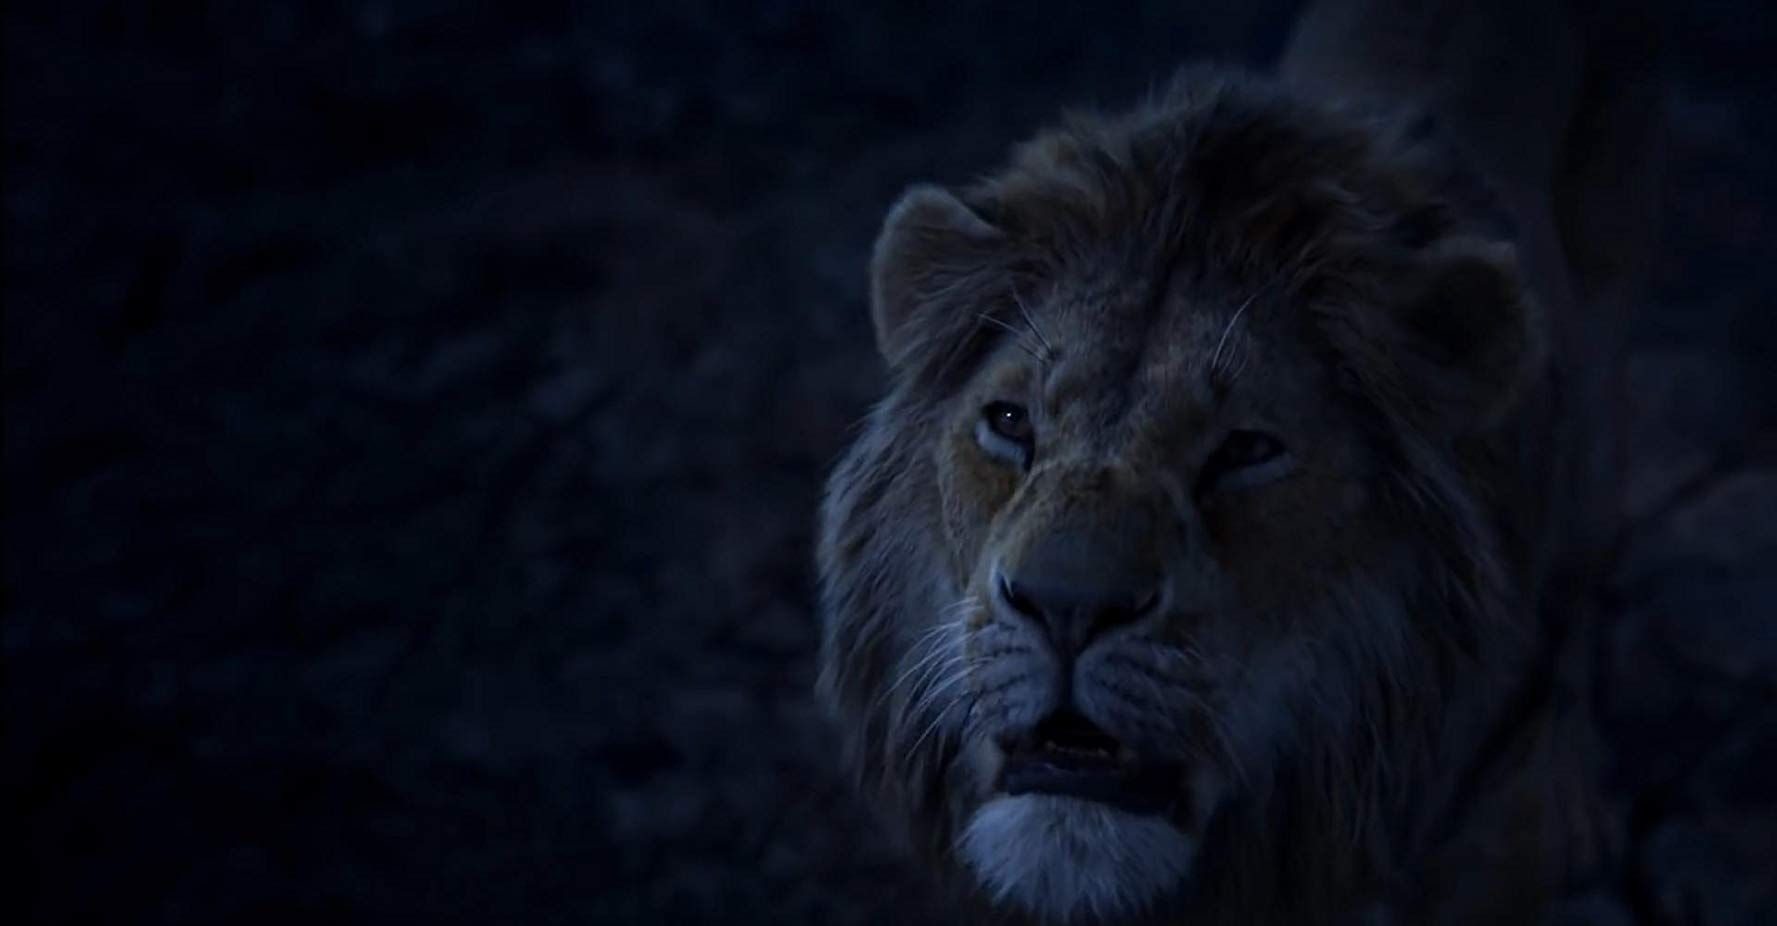 Donald Glover In The Lion King 2019 Lion King Watch The Lion